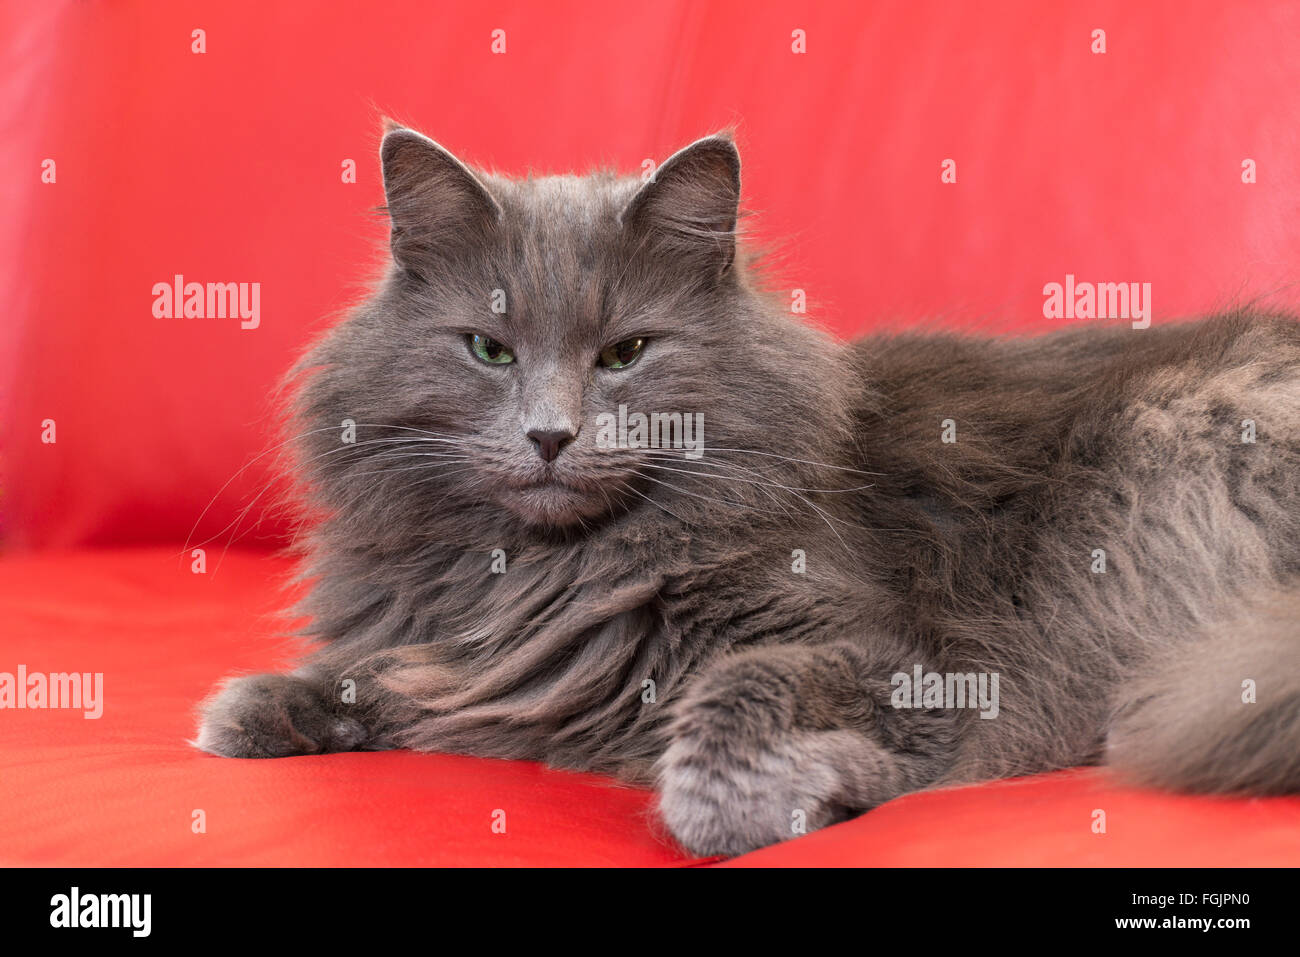 Norwegian Forest Cat Lying On Red Sofa Blue Cat Purebred Cat Stock Photo Alamy